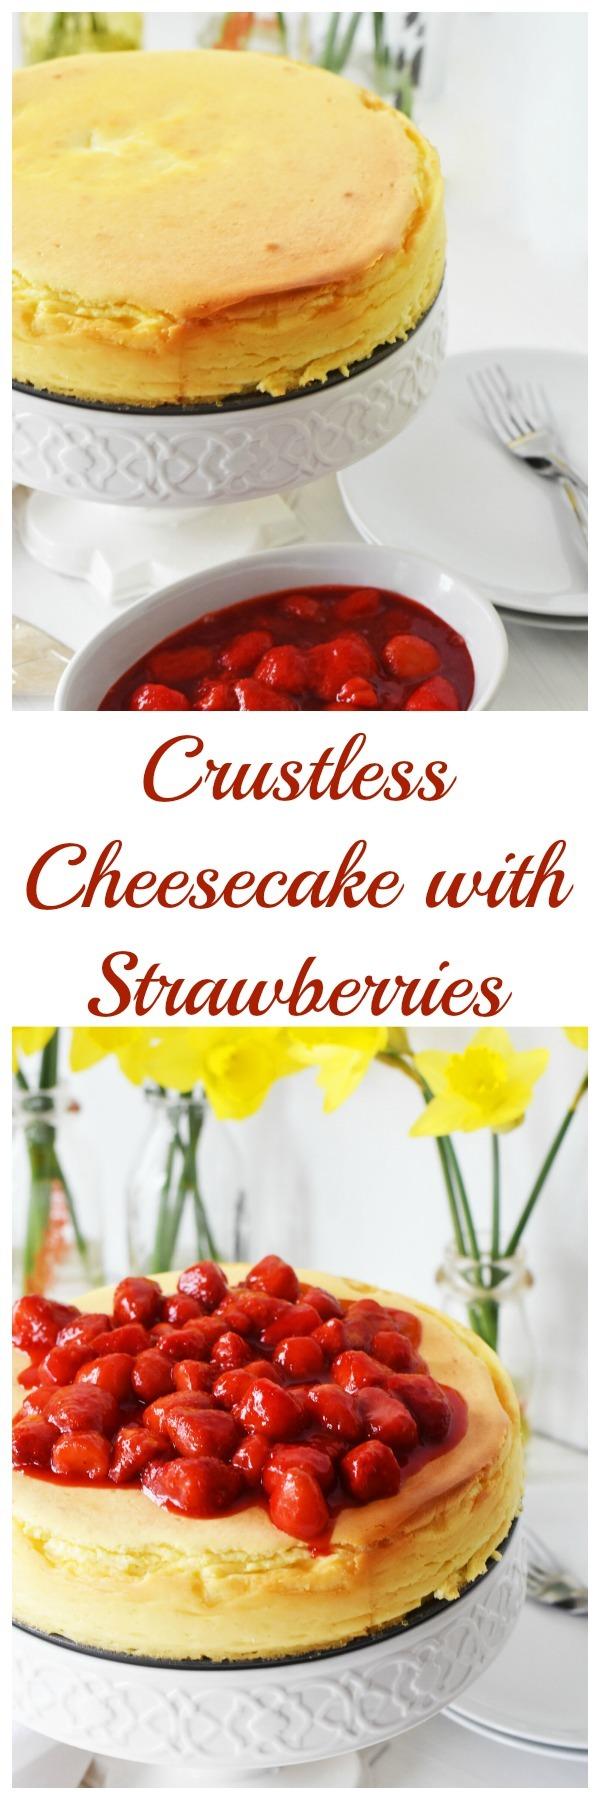 Crustless Cheesecake with Strawberries